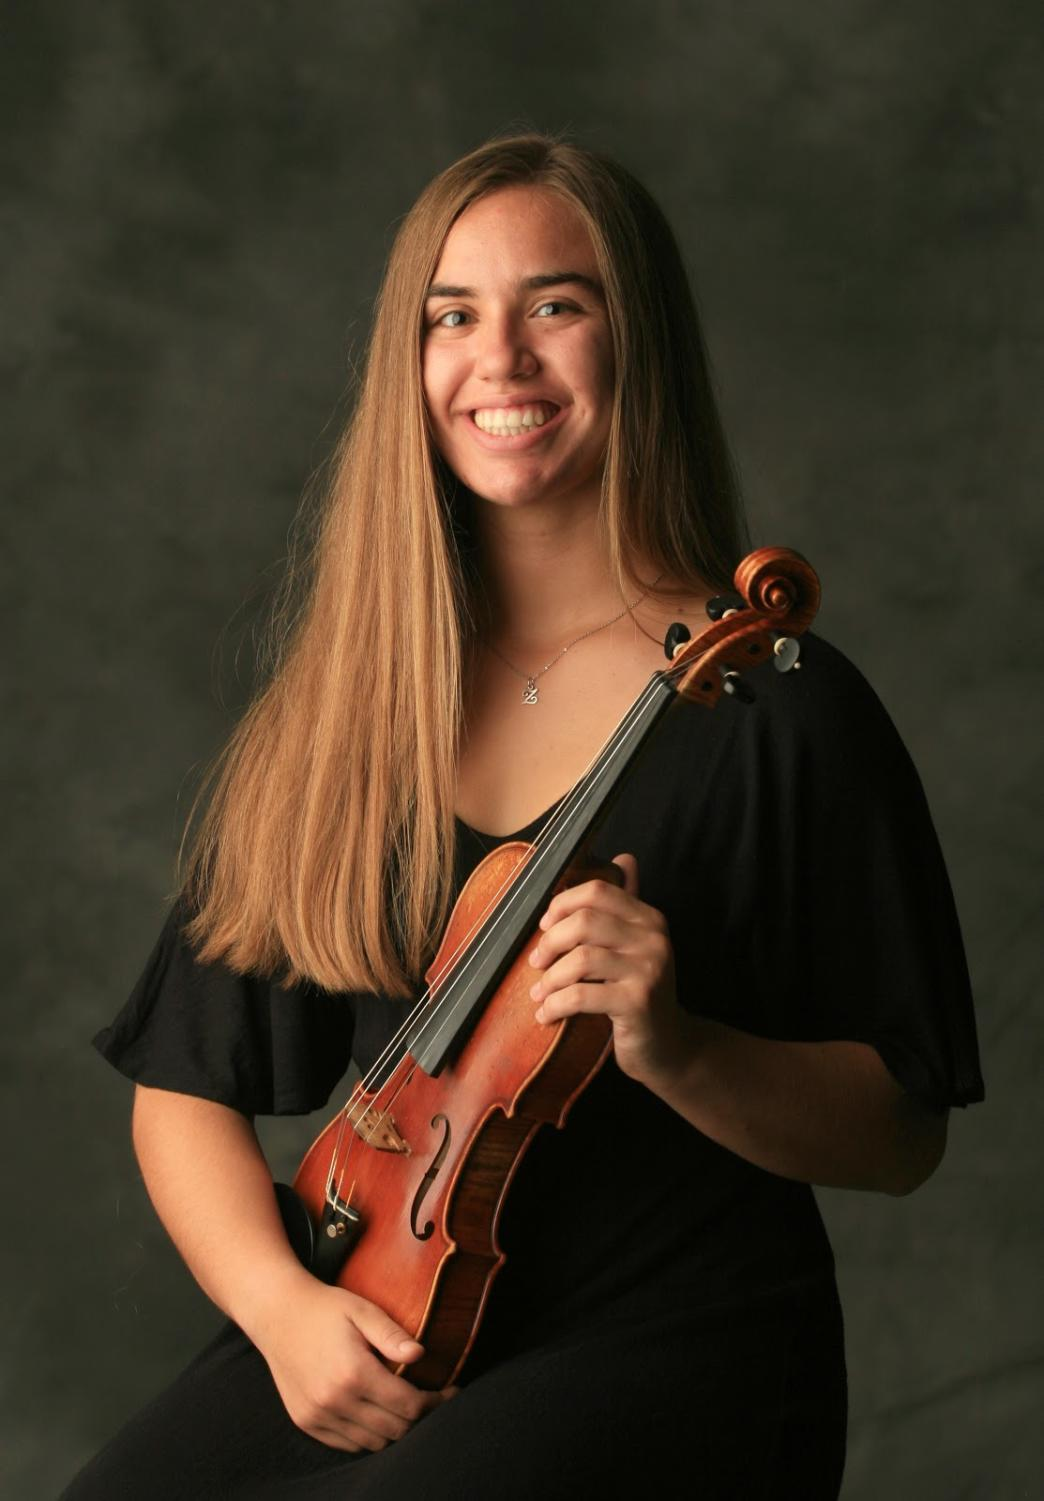 Zoe Wolfe won the Memphis Youth Symphony concerto competition with her performance of the Lalo violin concerto. Wolfe has been a member of the program for nine years, and this was her first time participating in the annual competition.